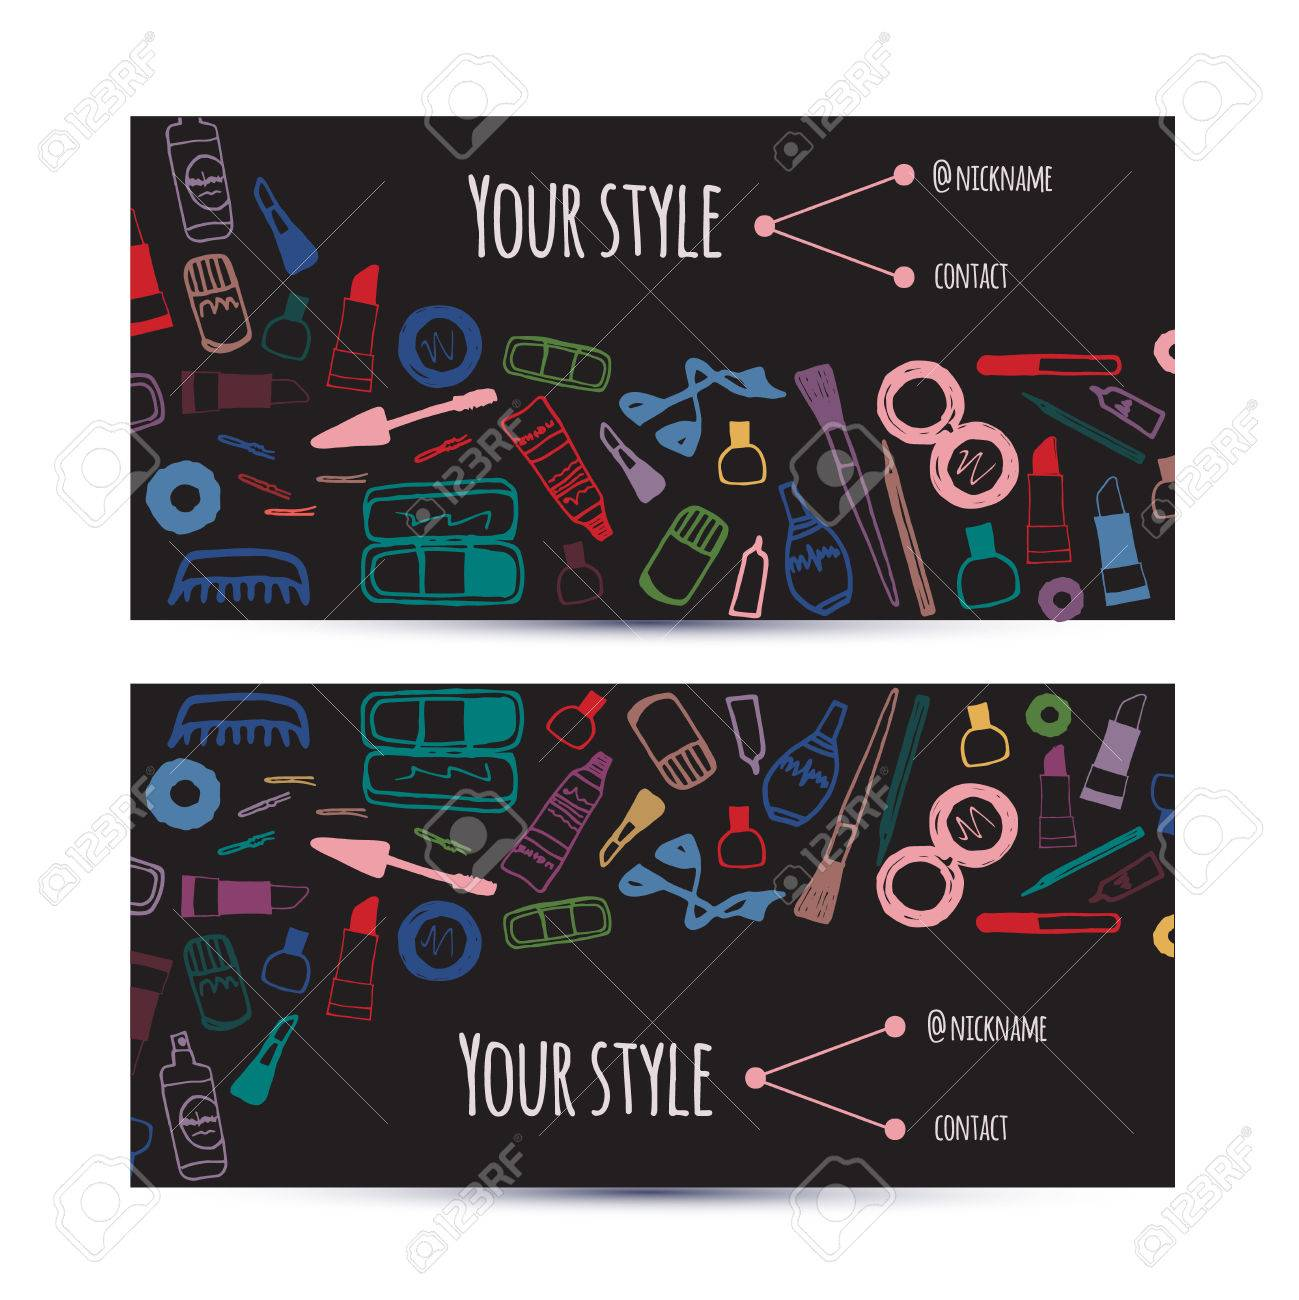 Business Creative And Invitation Cards Template With Beauty Items Cosmetics Vector Dark Colorful Design